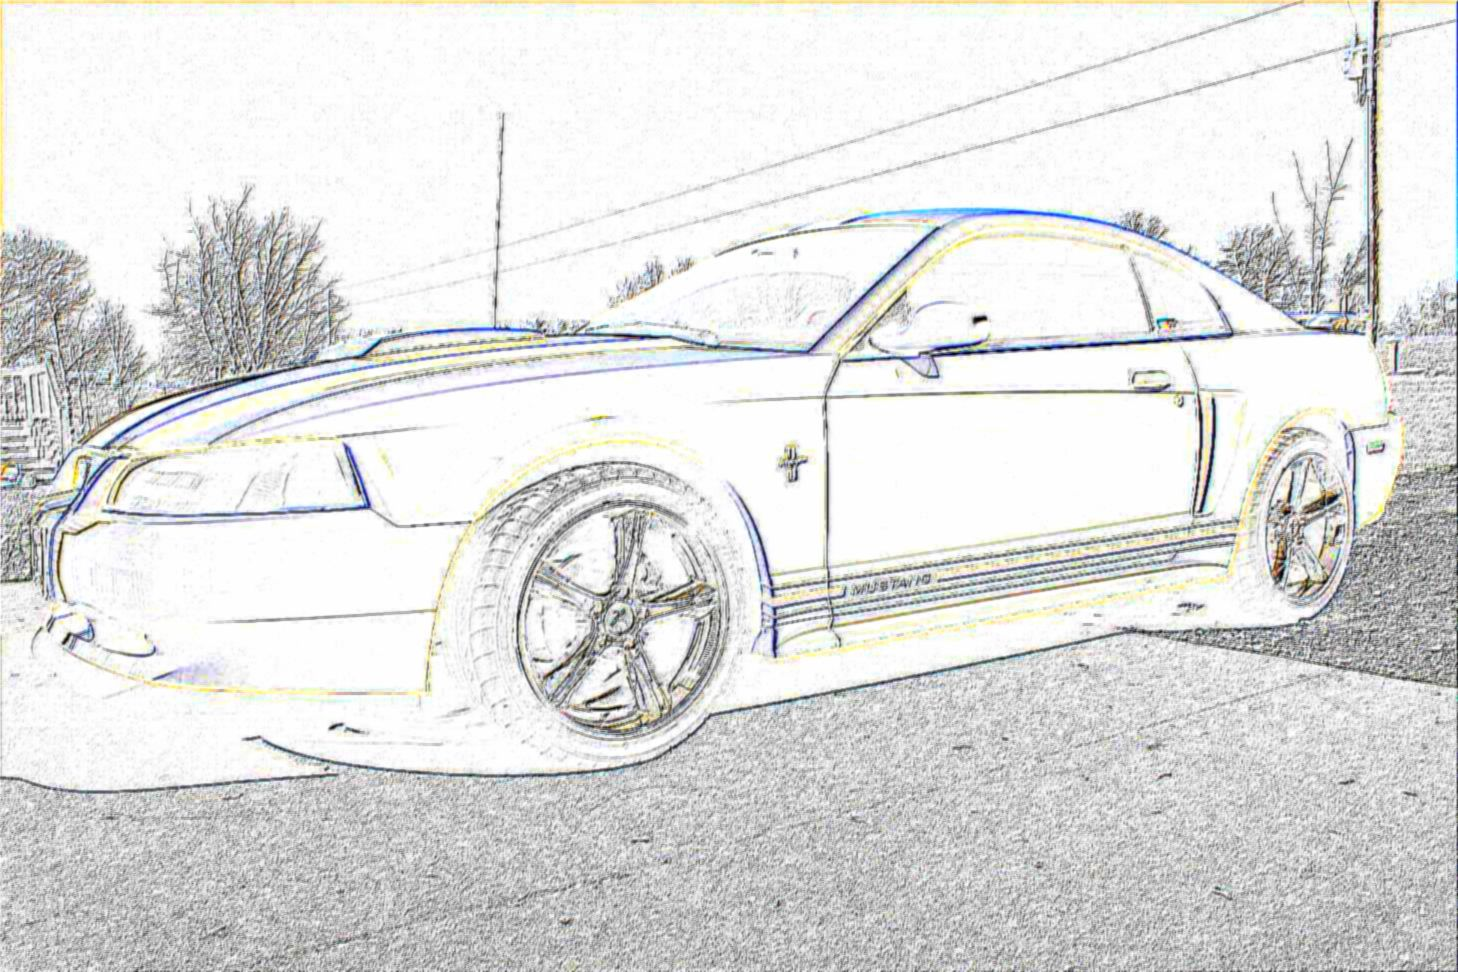 2004 mustang covertible clipart jpg library library 6 Mustang drawing front for free download on Ayoqq cliparts jpg library library